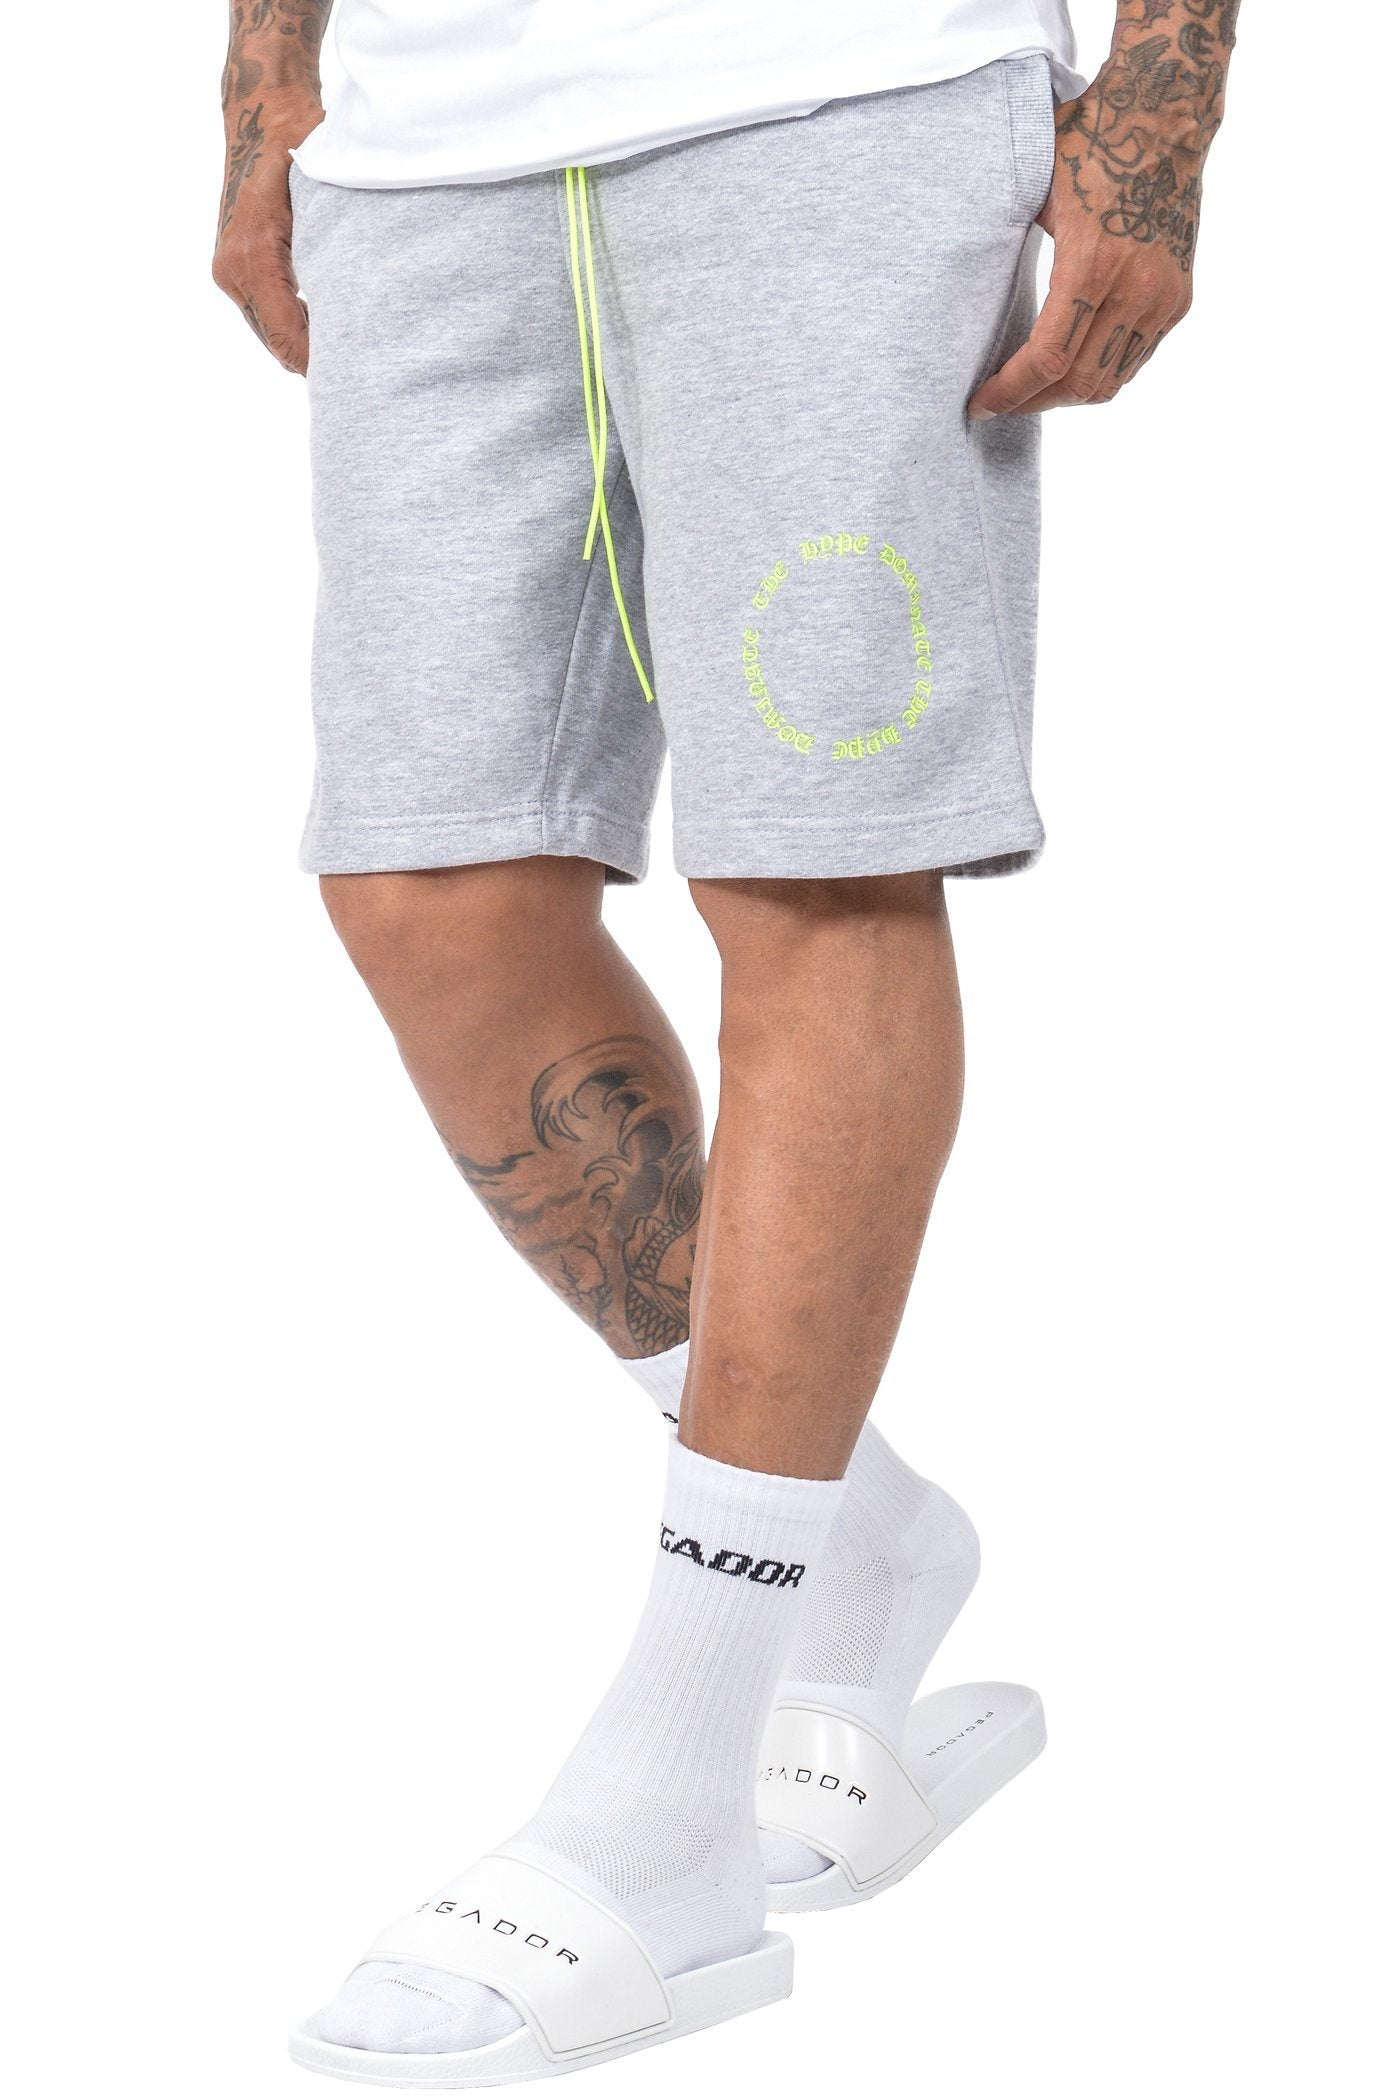 Pito Sweatshorts Heather Grey - PEGADOR - Dominate the Hype